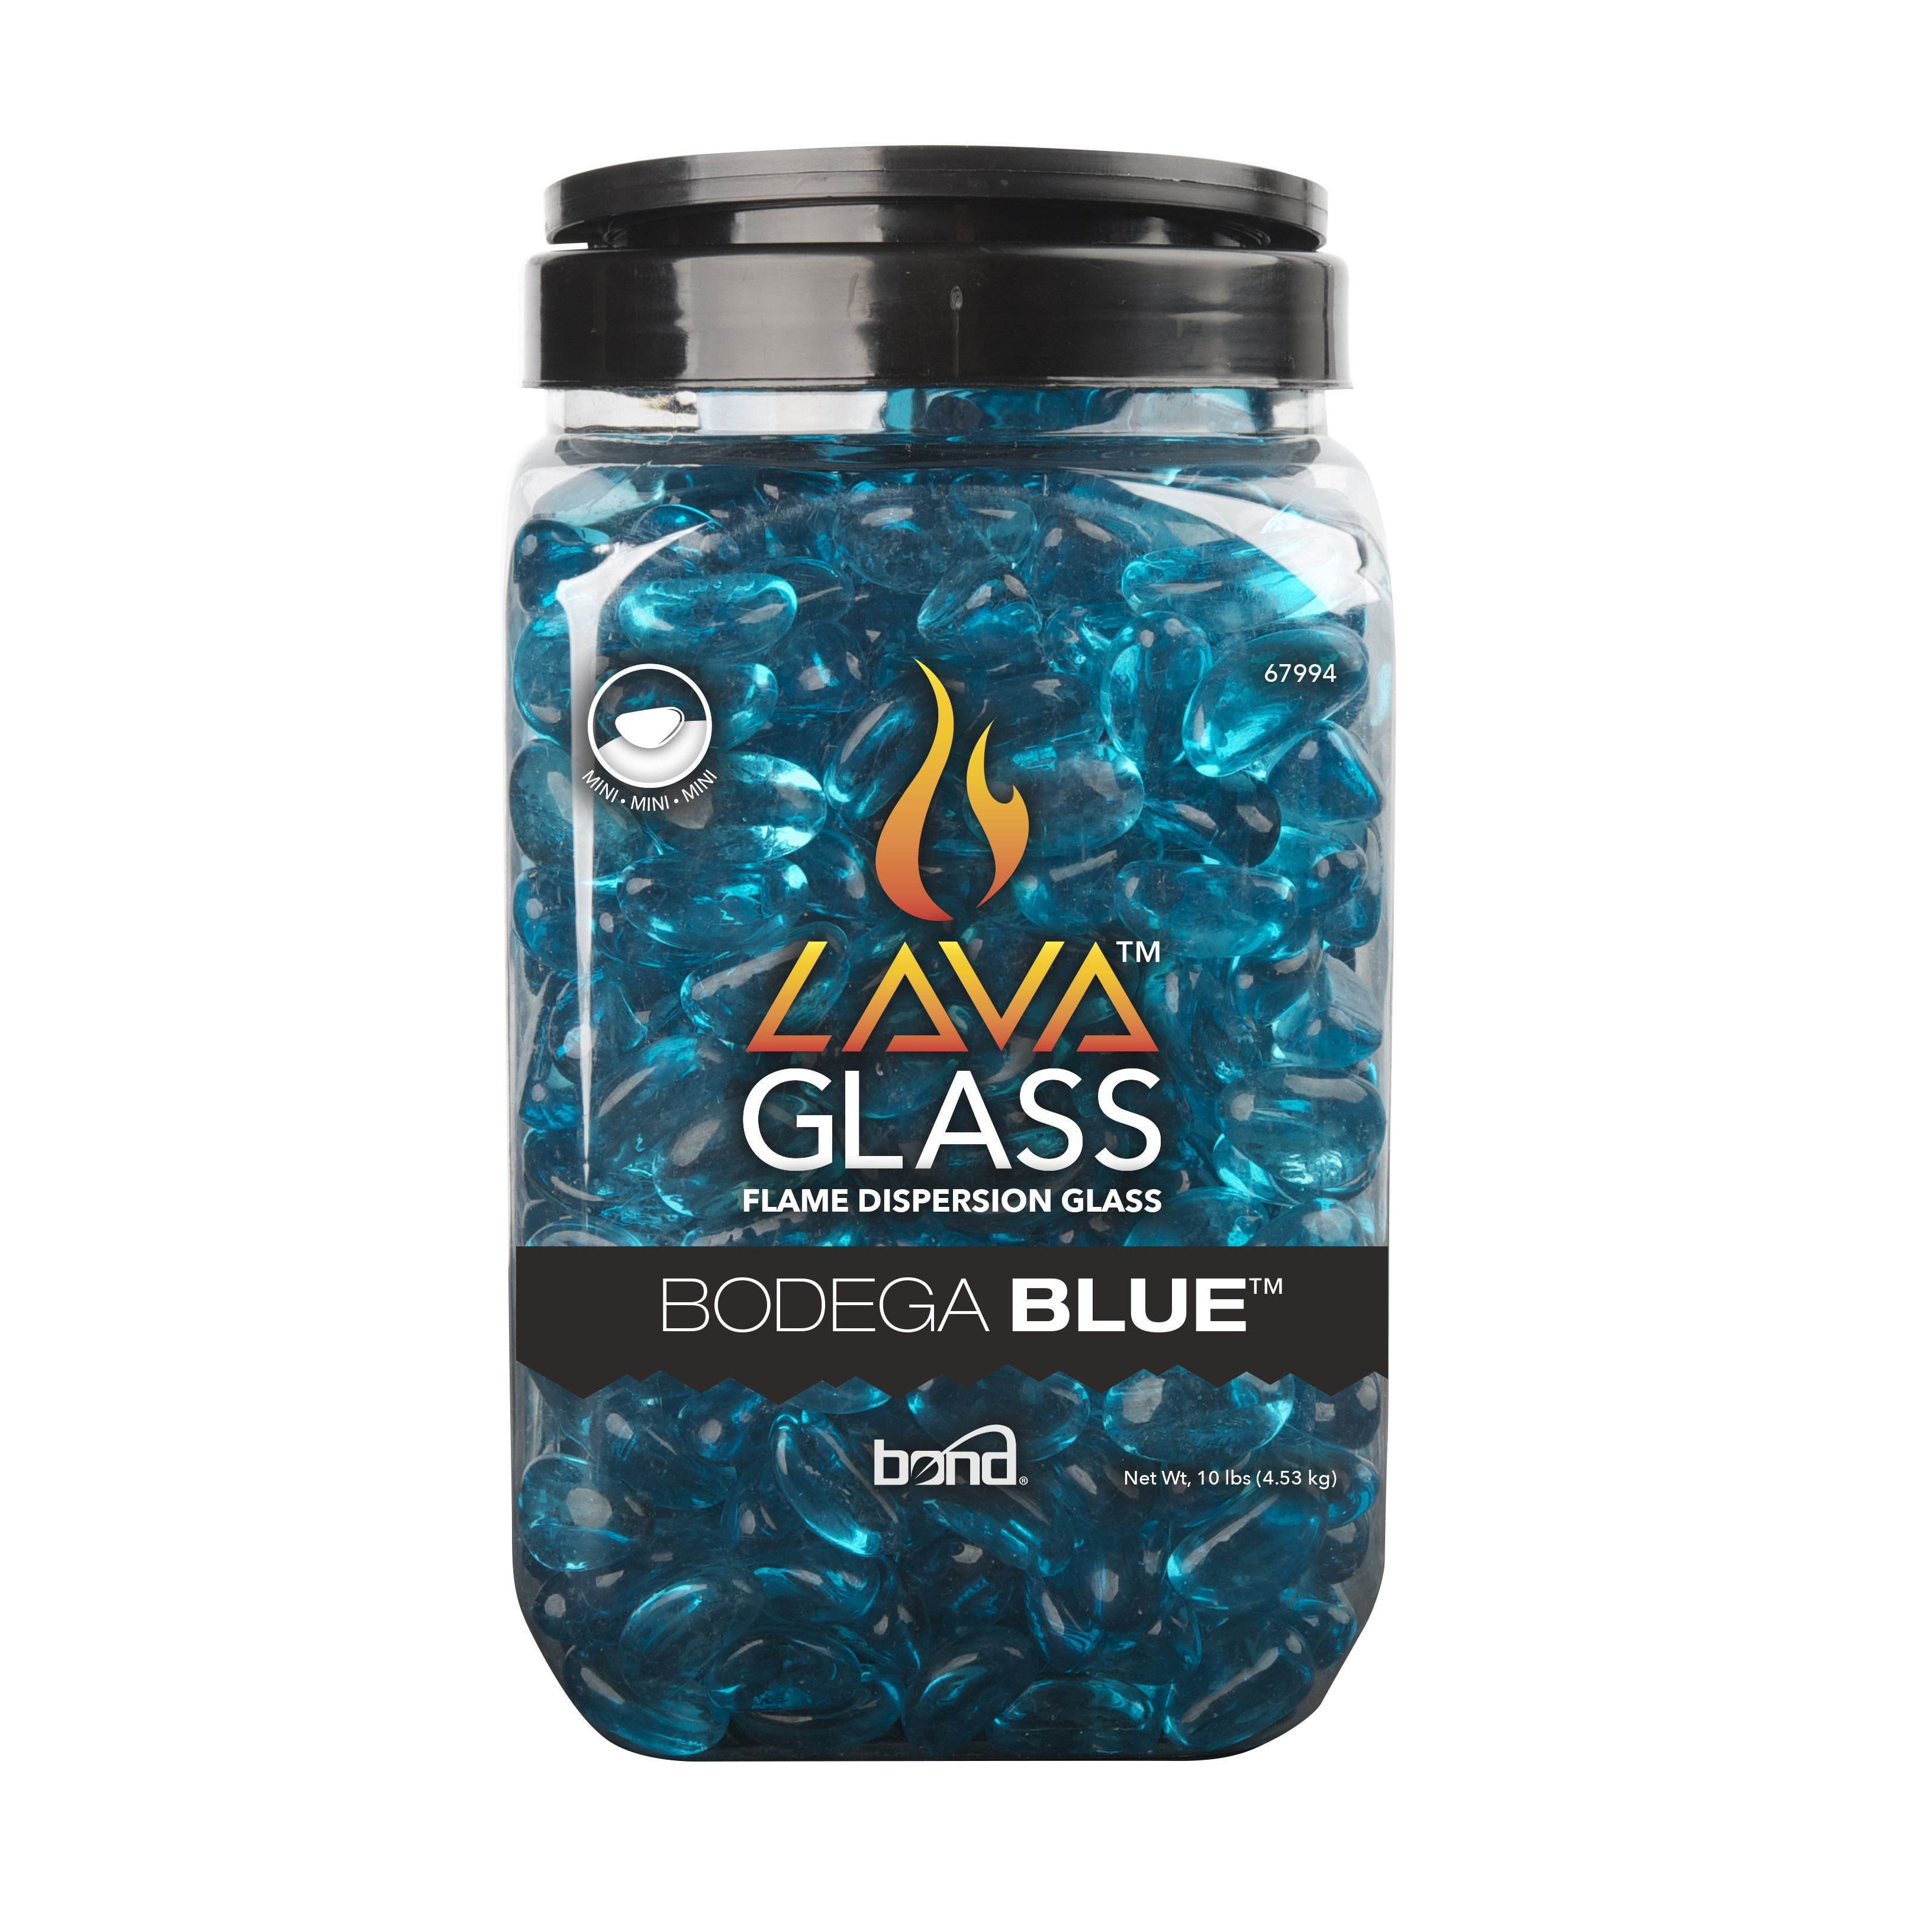 lavaglass mini blue outdoor decor lava minis and outlet store